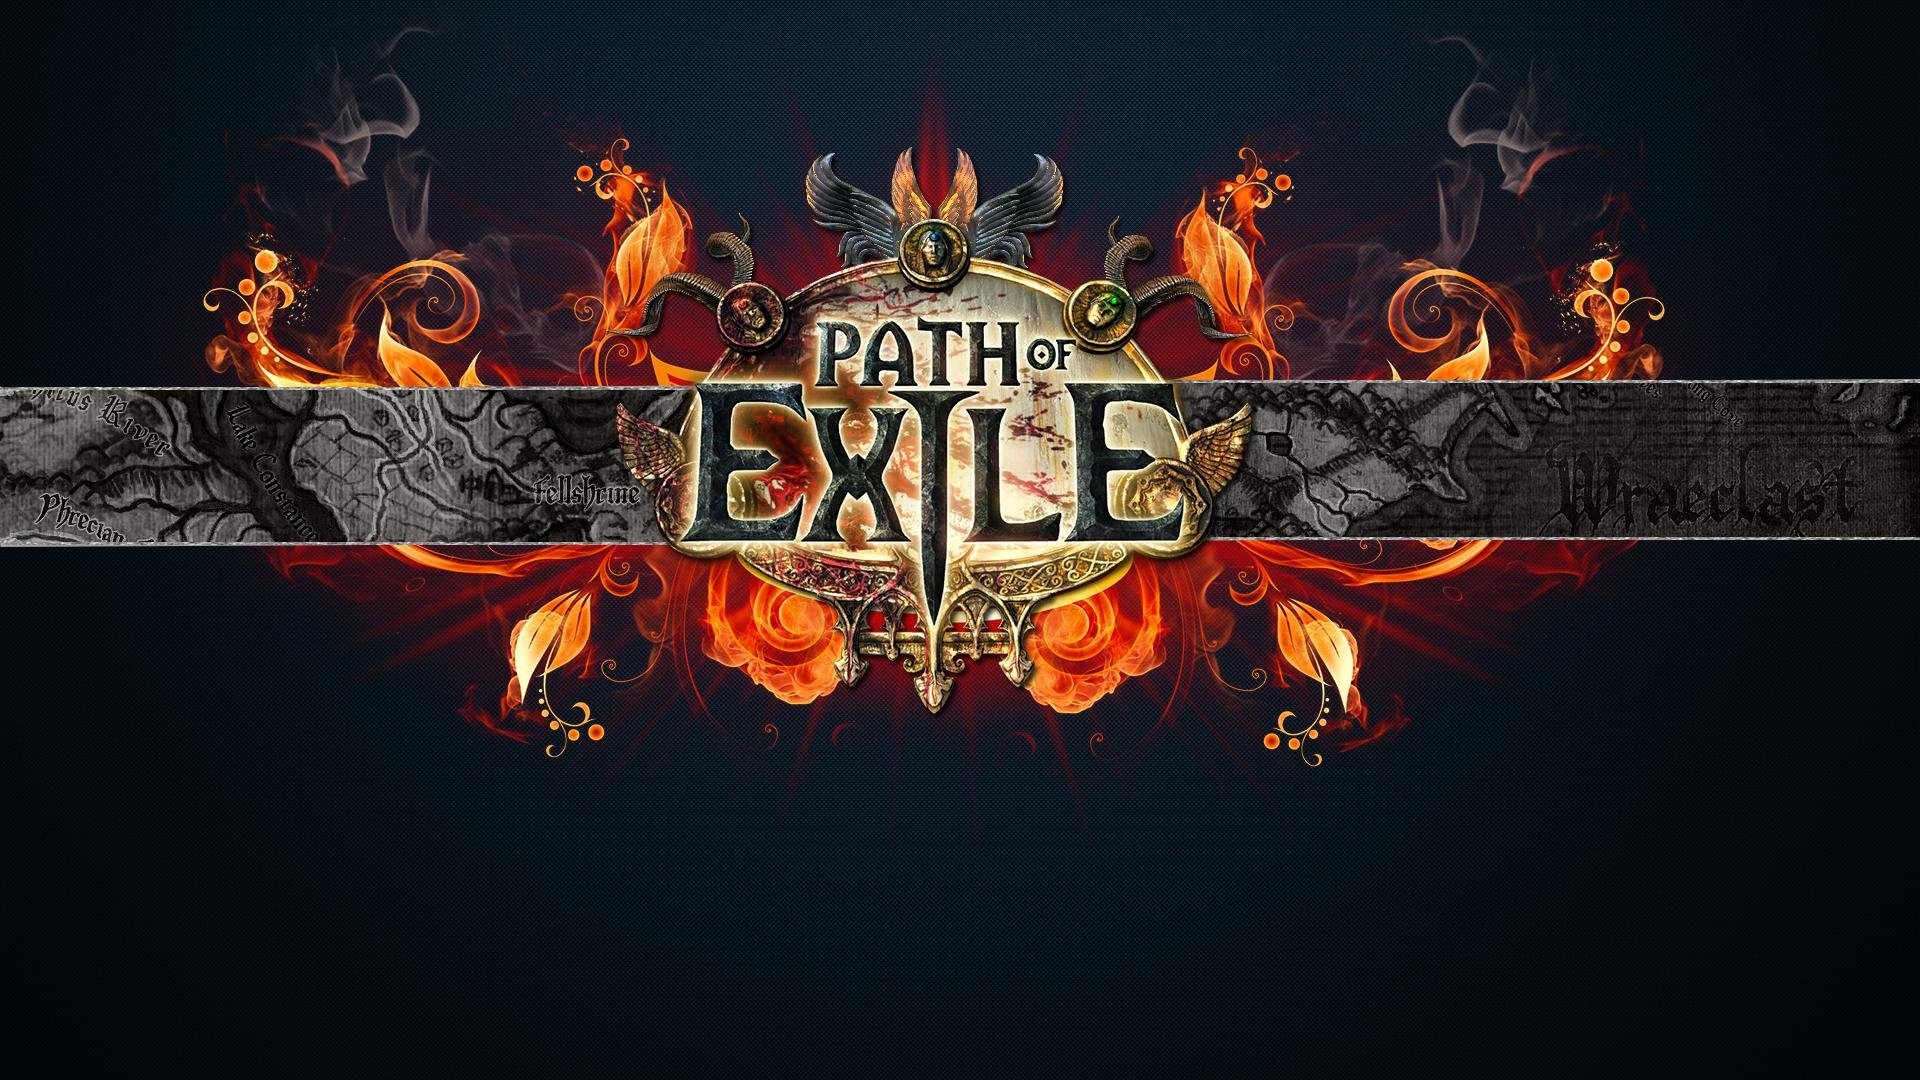 21 Path Of Exile Hd Wallpapers Background Images Wallpaper Abyss